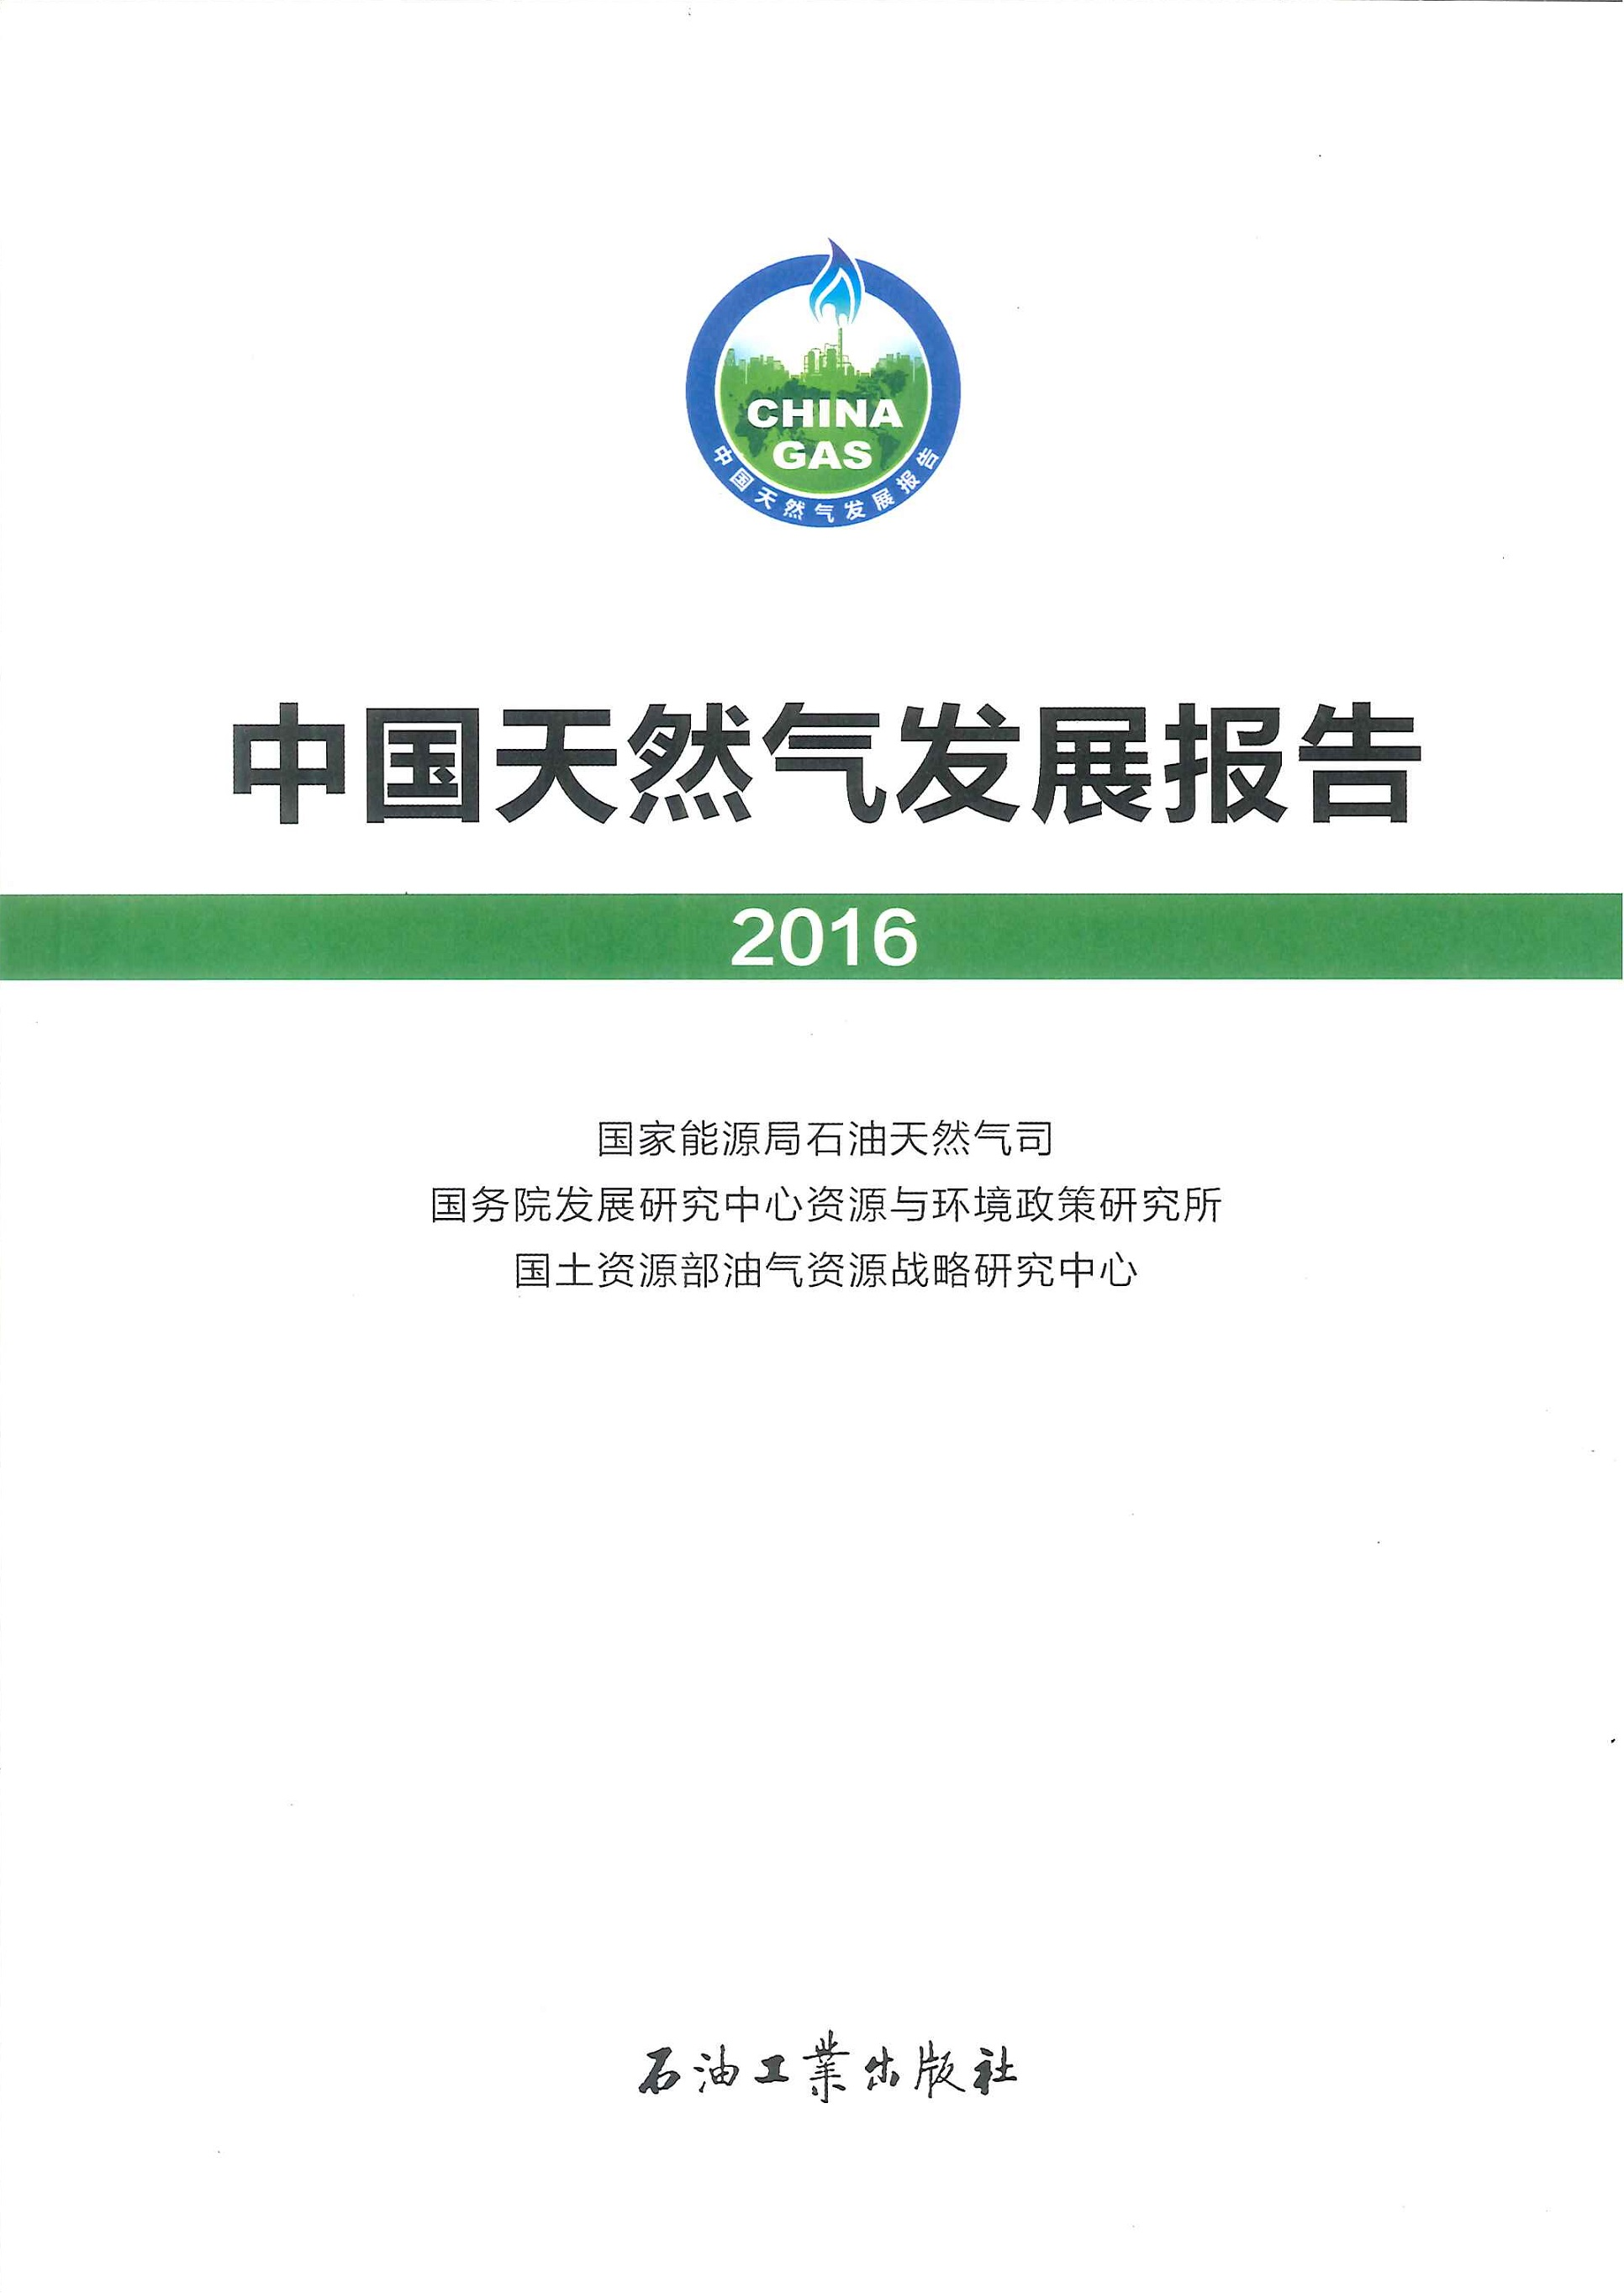 中国天然气发展报告.2016=China natural gas development report